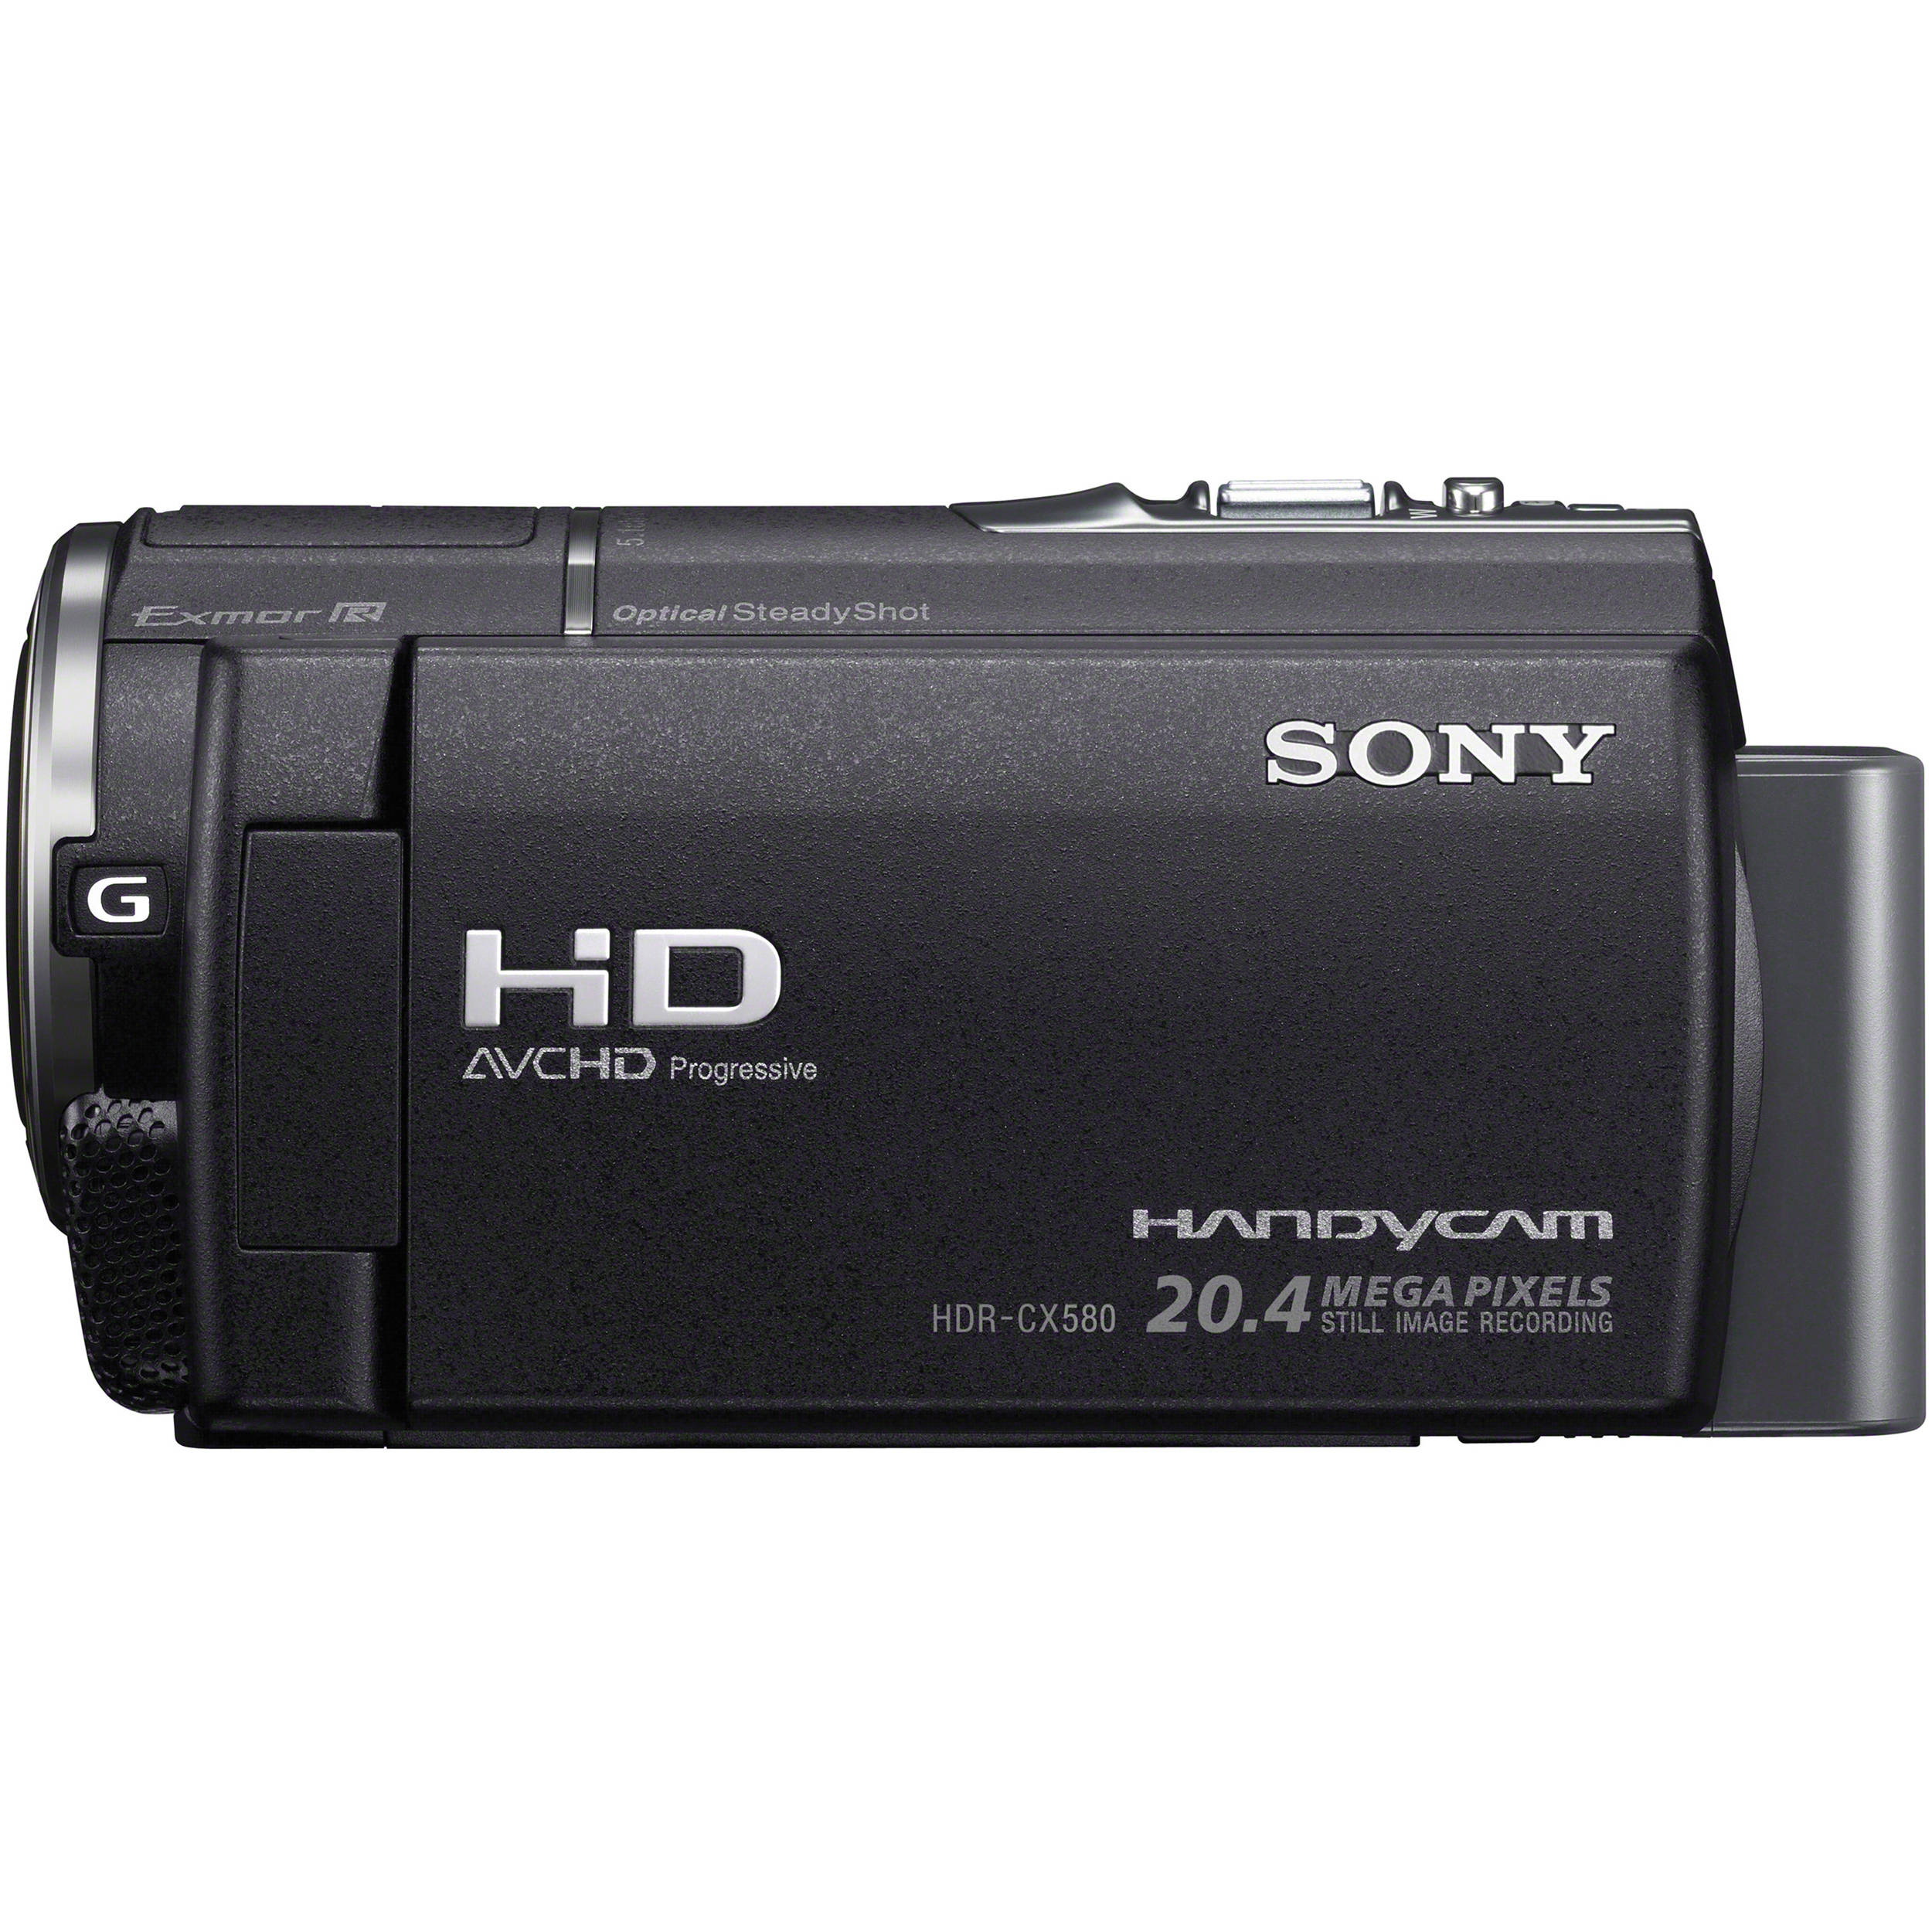 2 Pack Sony HDR-CX580V Camcorder Memory Card 2 x 8GB Secure Digital High Capacity Memory Cards SDHC